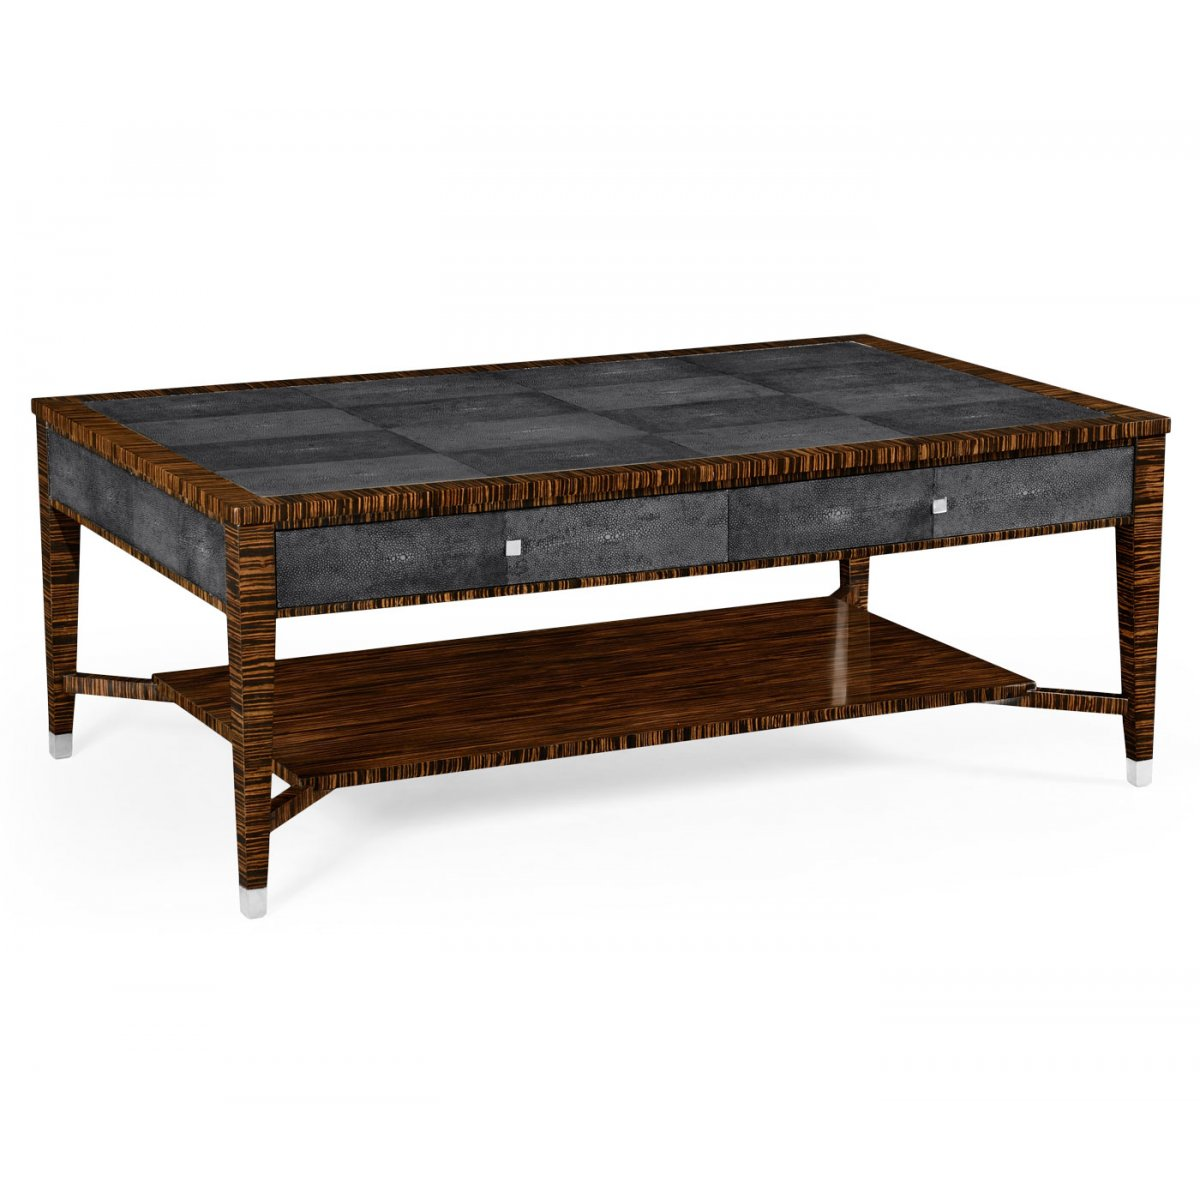 View All Coffee Tables View All Jonathan Charles Coffee Tables